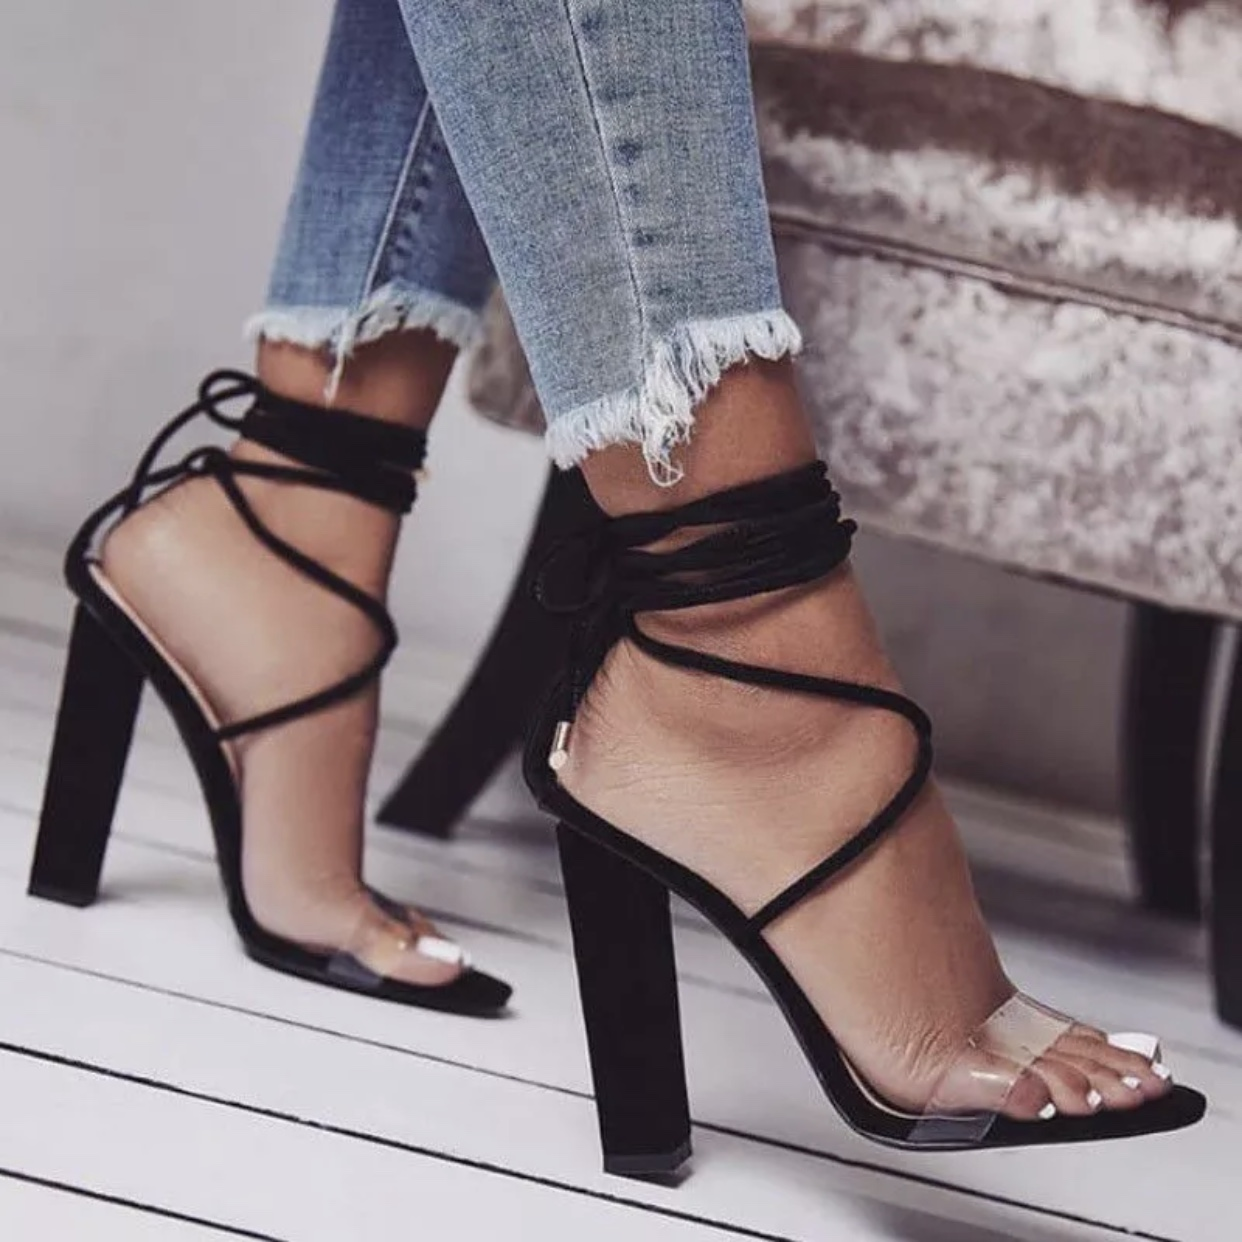 Black tie up block heels with clear